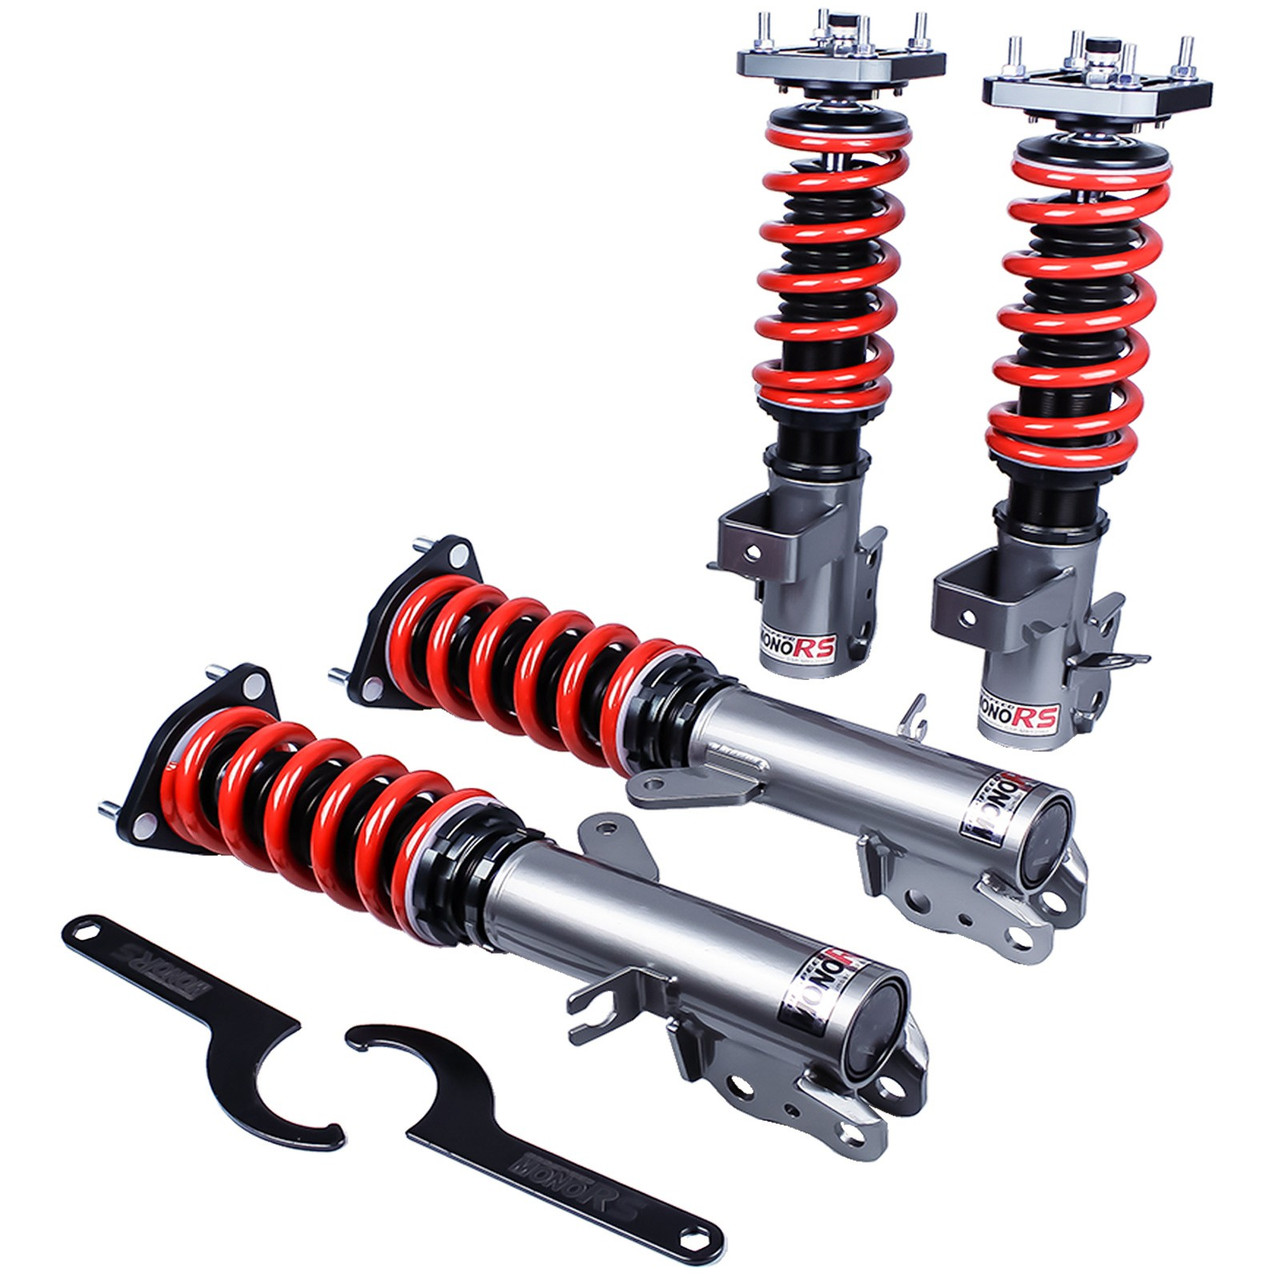 Godspeed MonoRS Coilover Suspension Shock+Spring for IS250 IS350 ISF 06-13 RWD